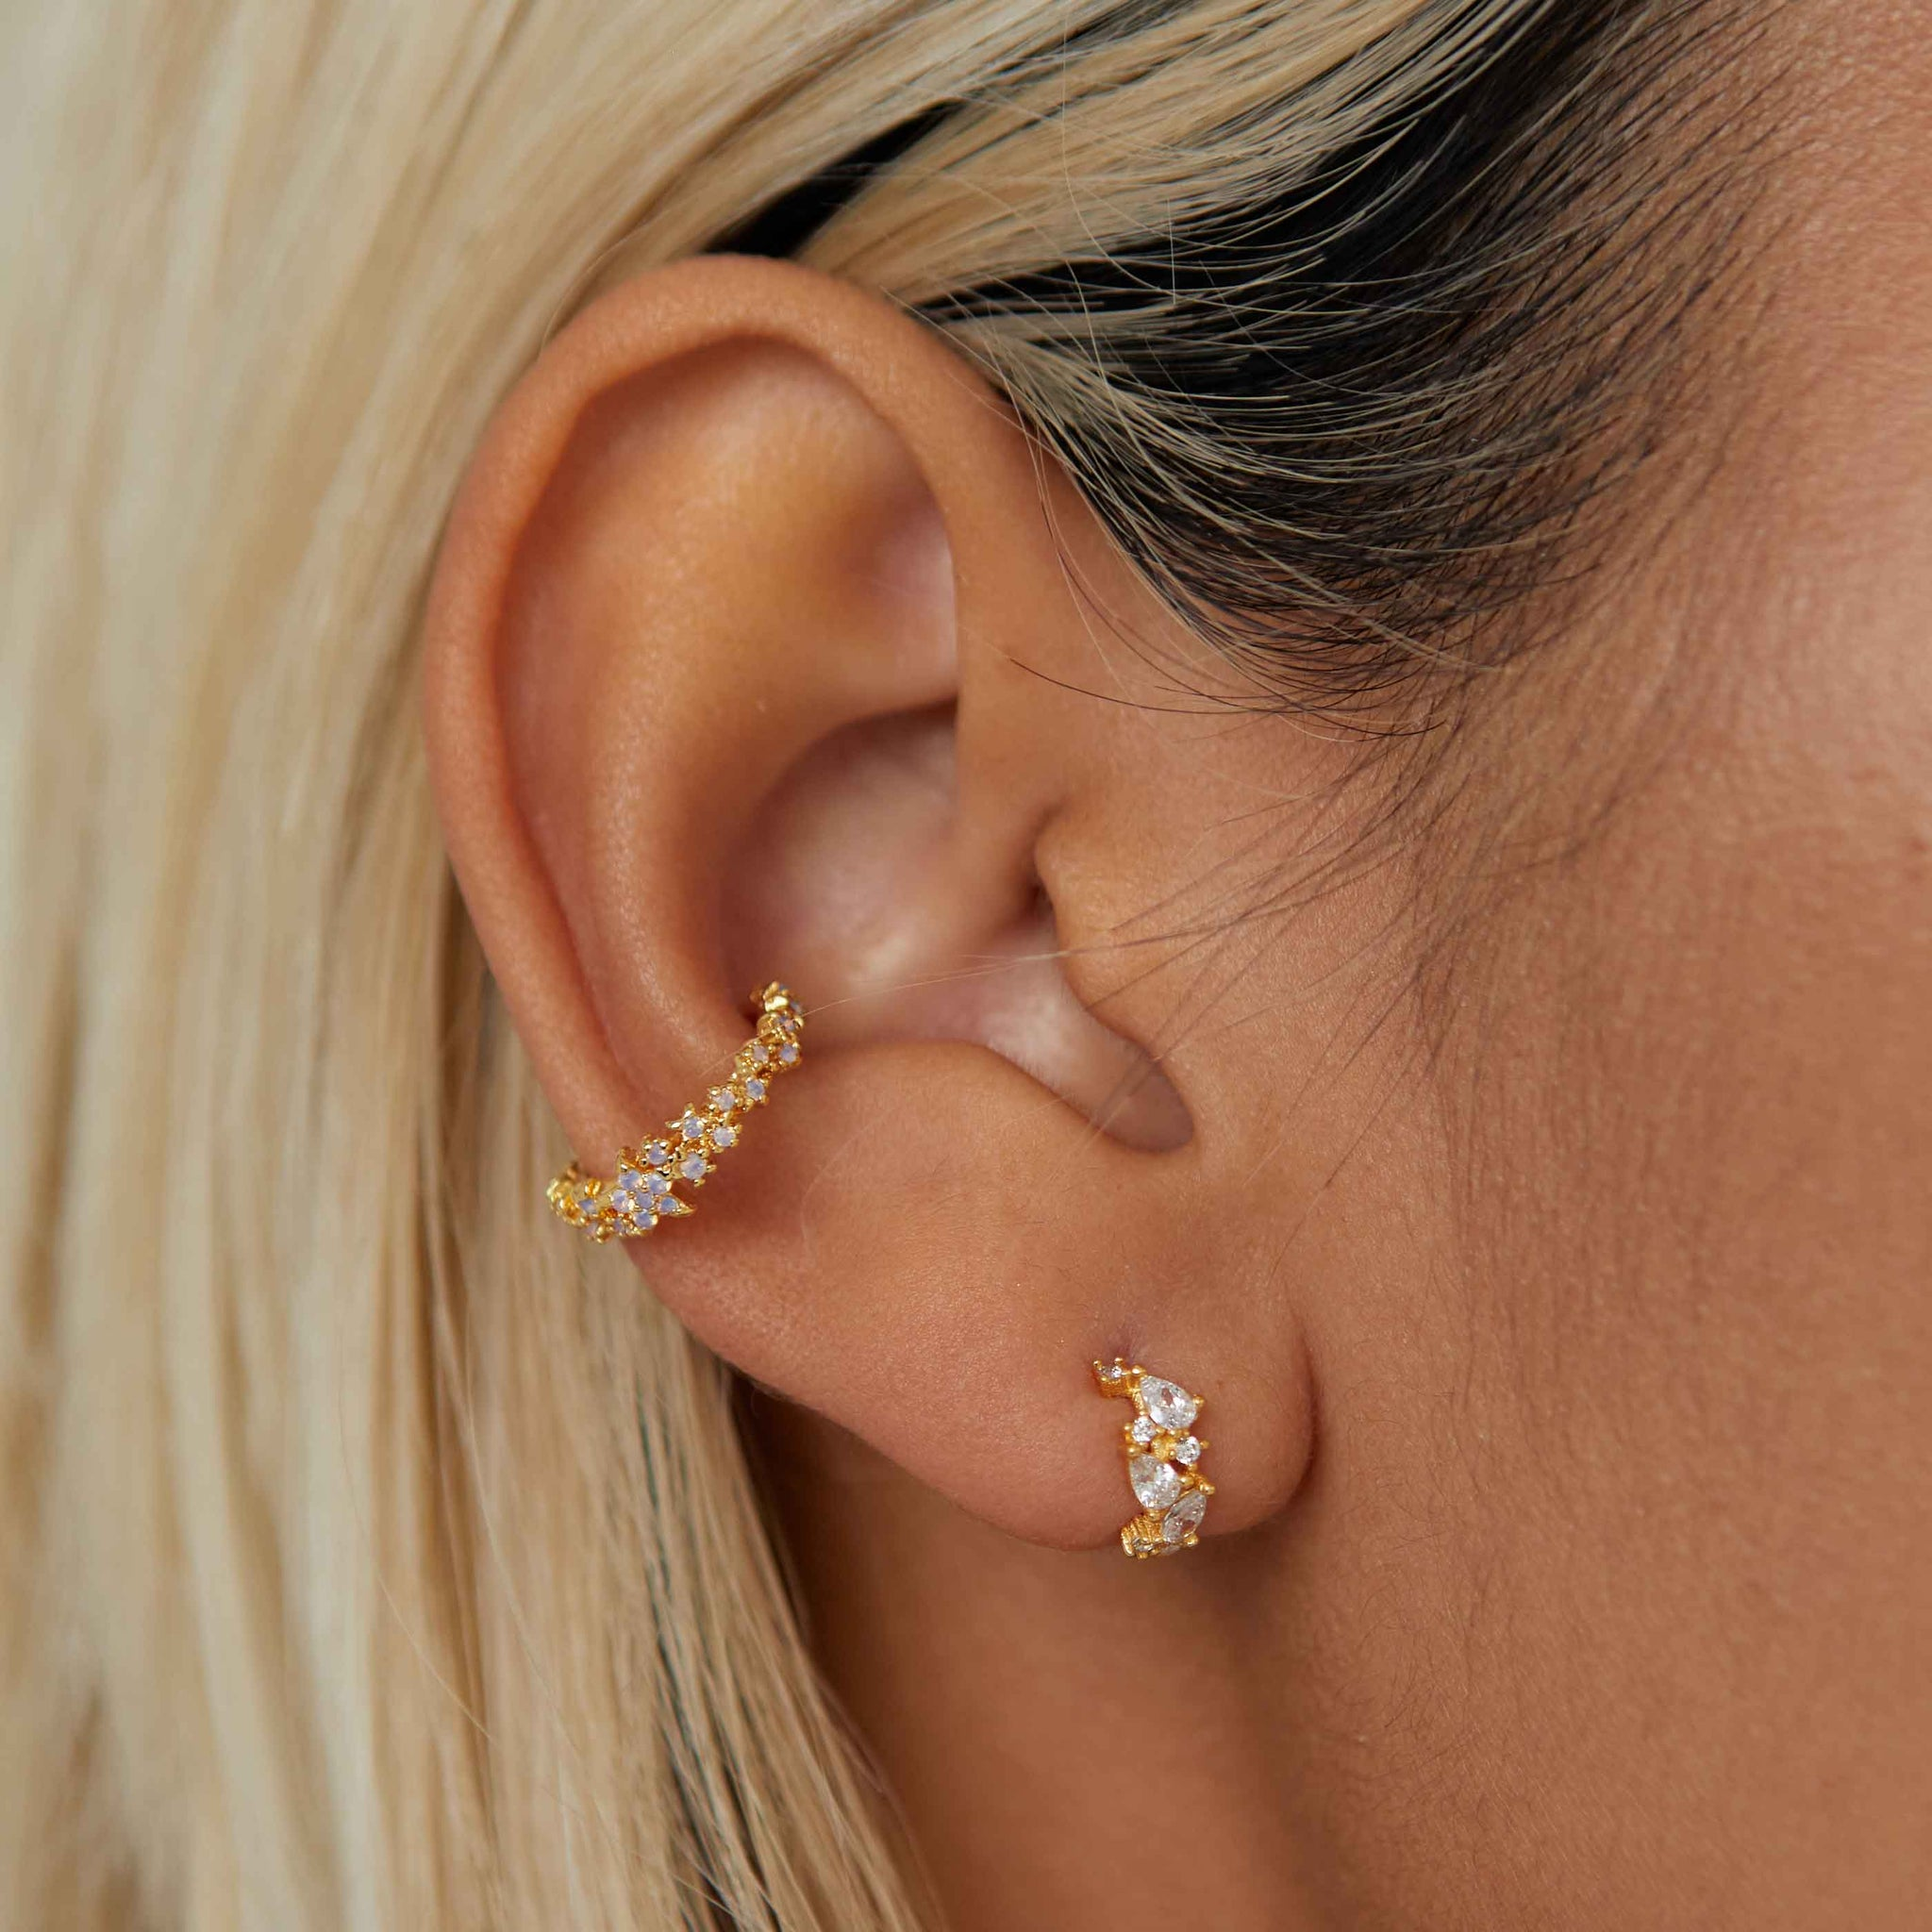 Mystic Star Ear Cuff in Gold worn with huggies